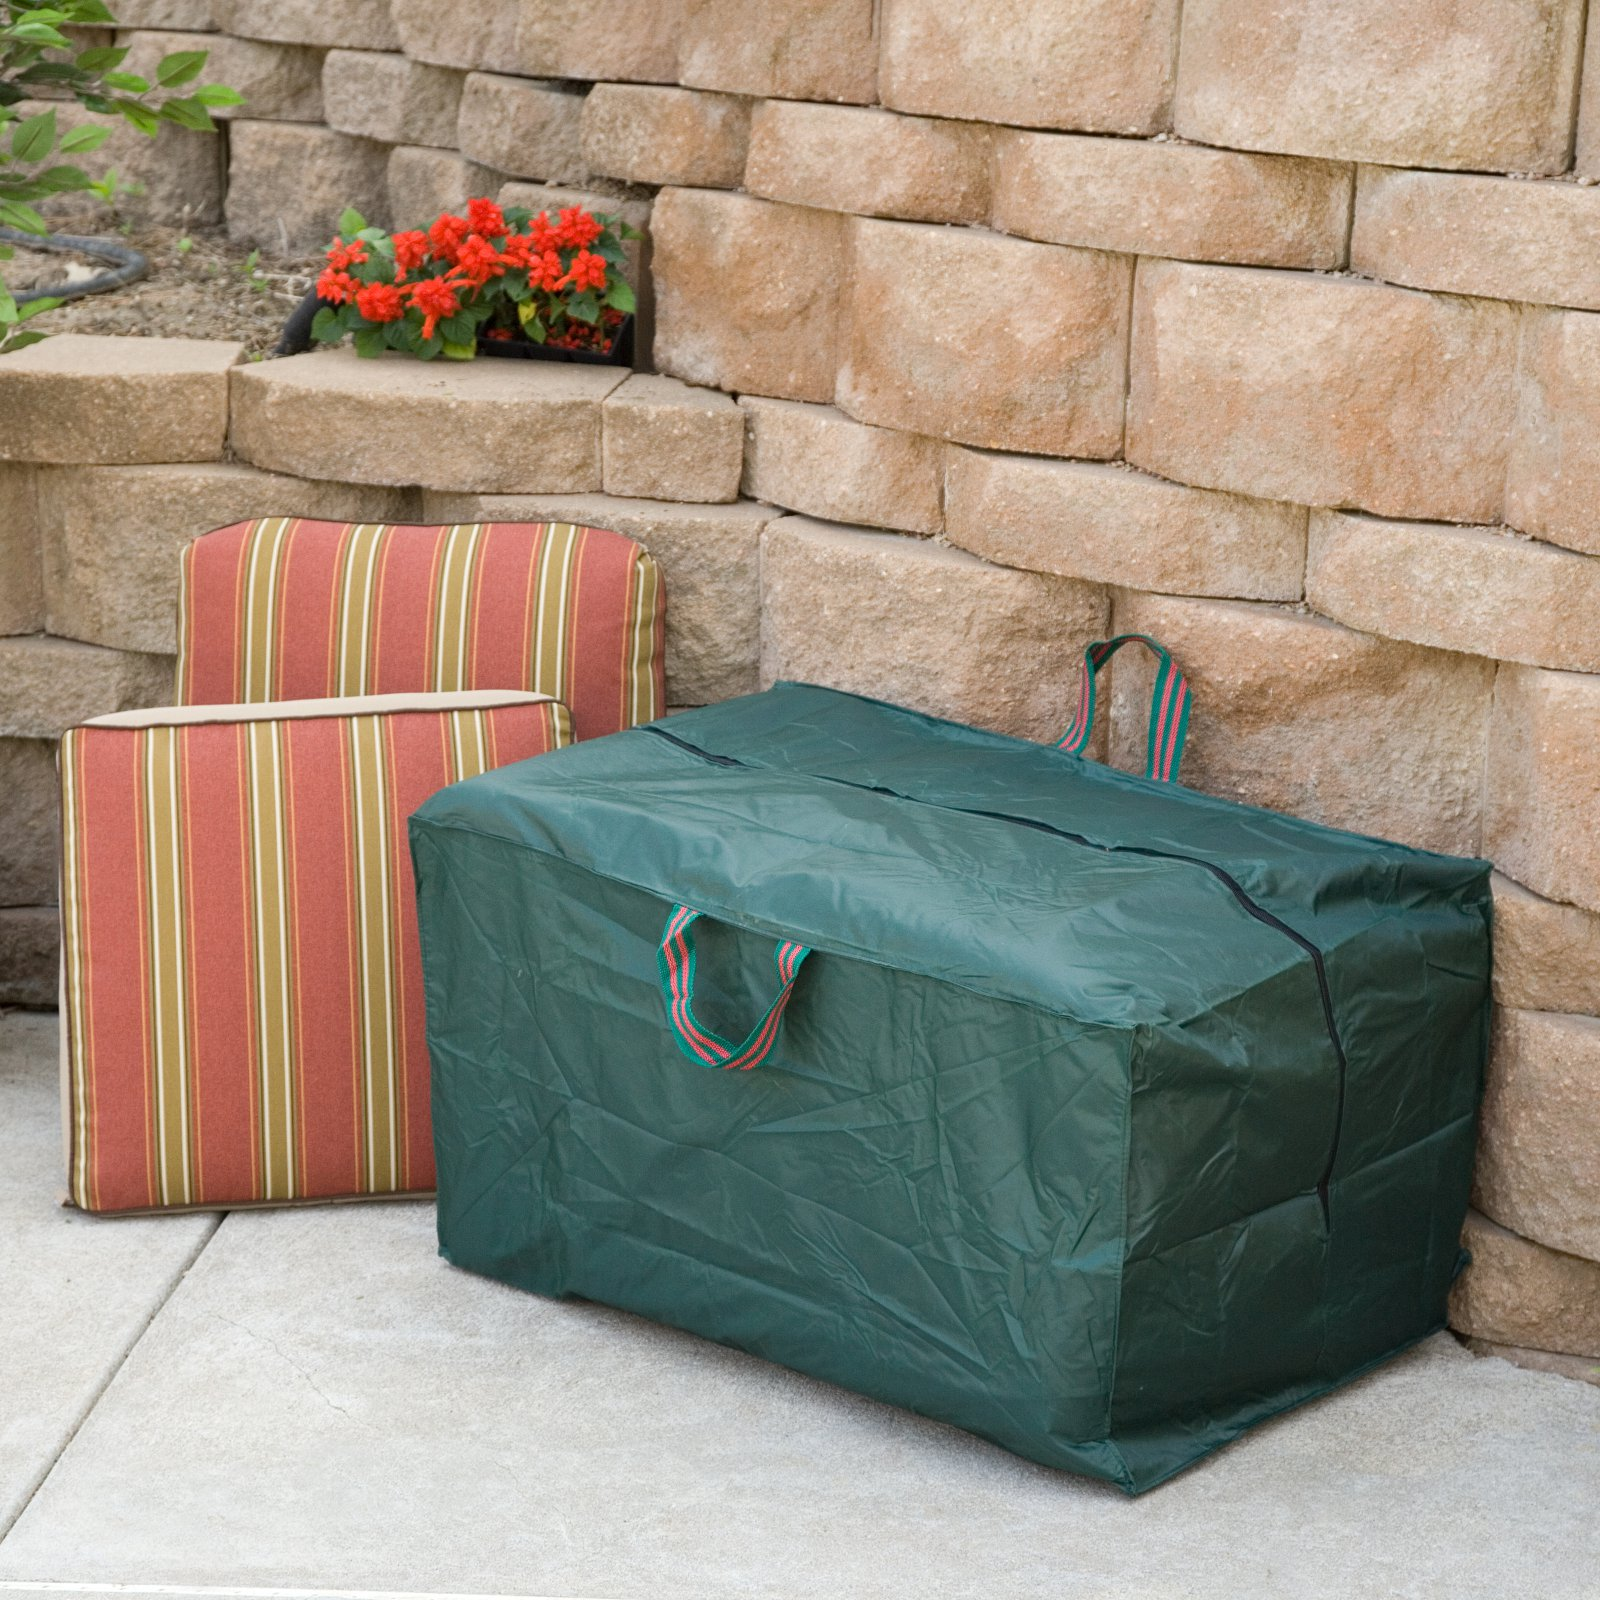 Bosmere Outdoor Cushion Sto-Away